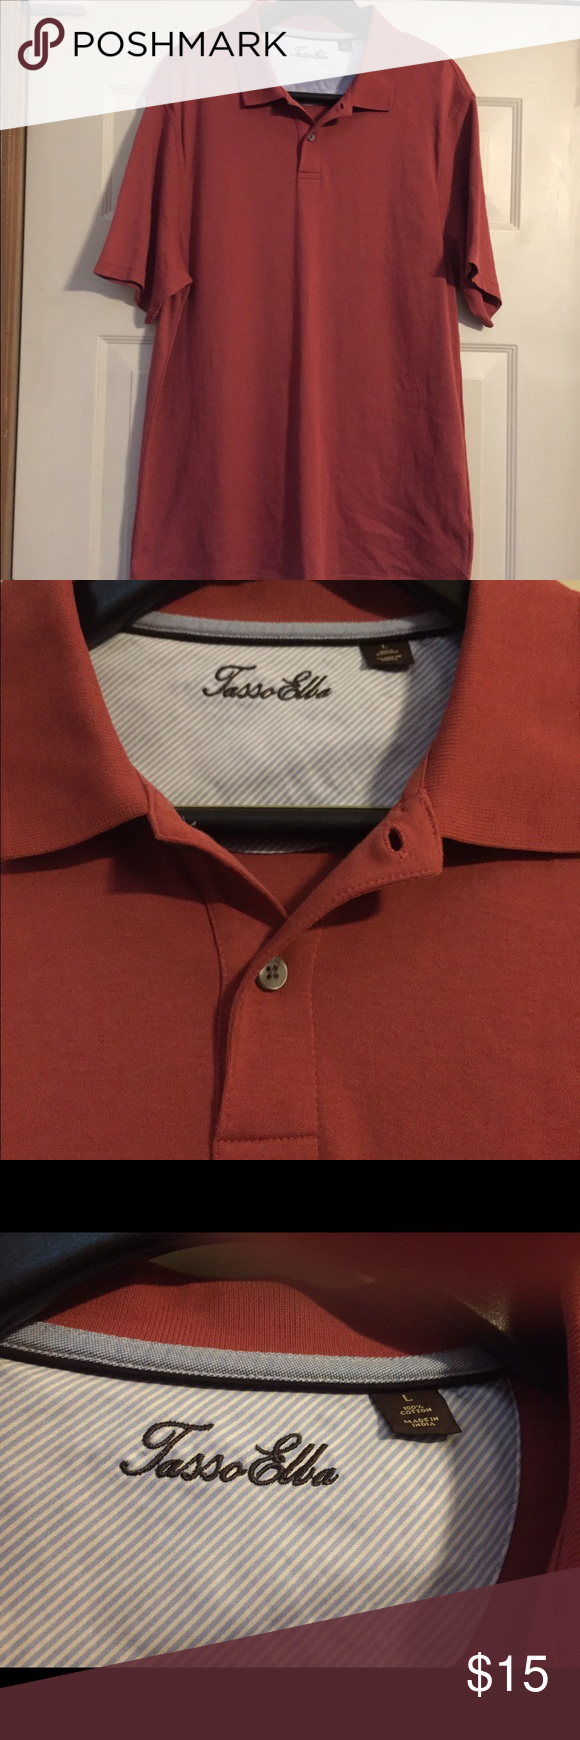 Men's Tasso Elba polo like new large Perfect condition. Smoke and pet free home. Bundle discount of 20% Tasso Elba Shirts Polos